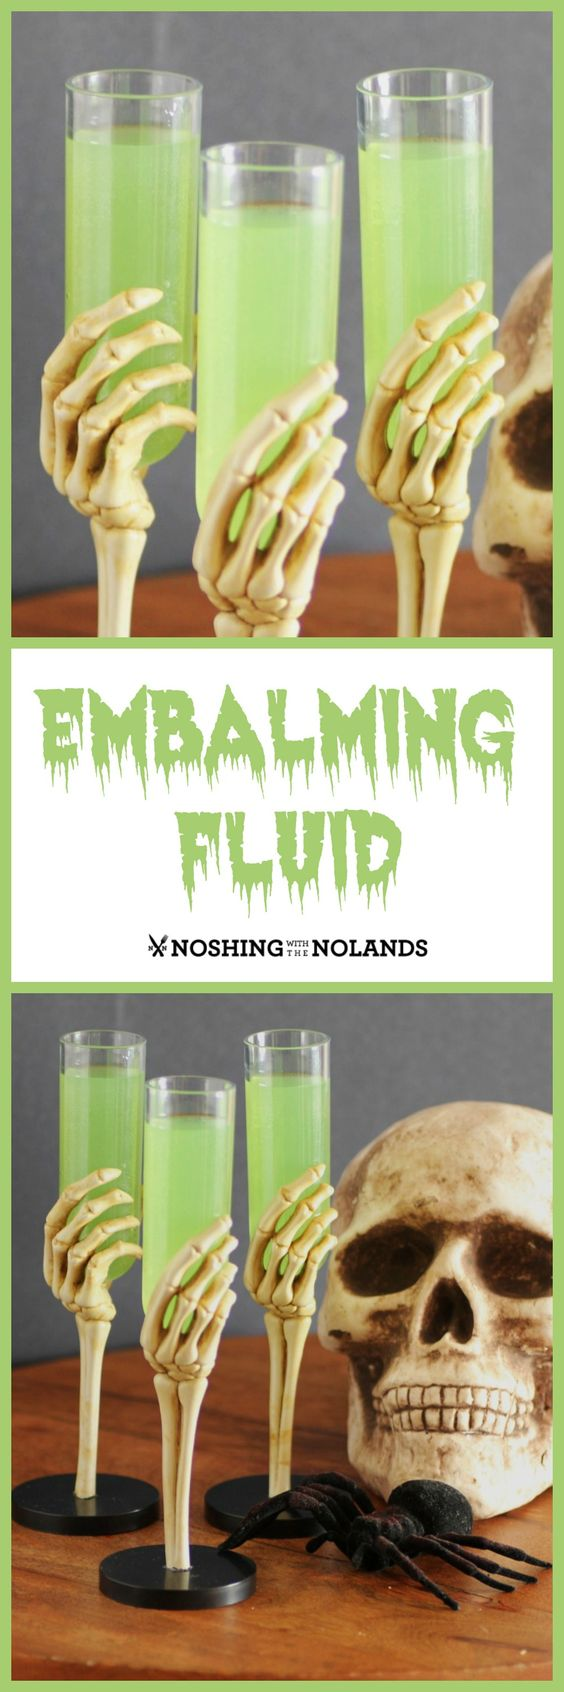 16. Embalming Fluid